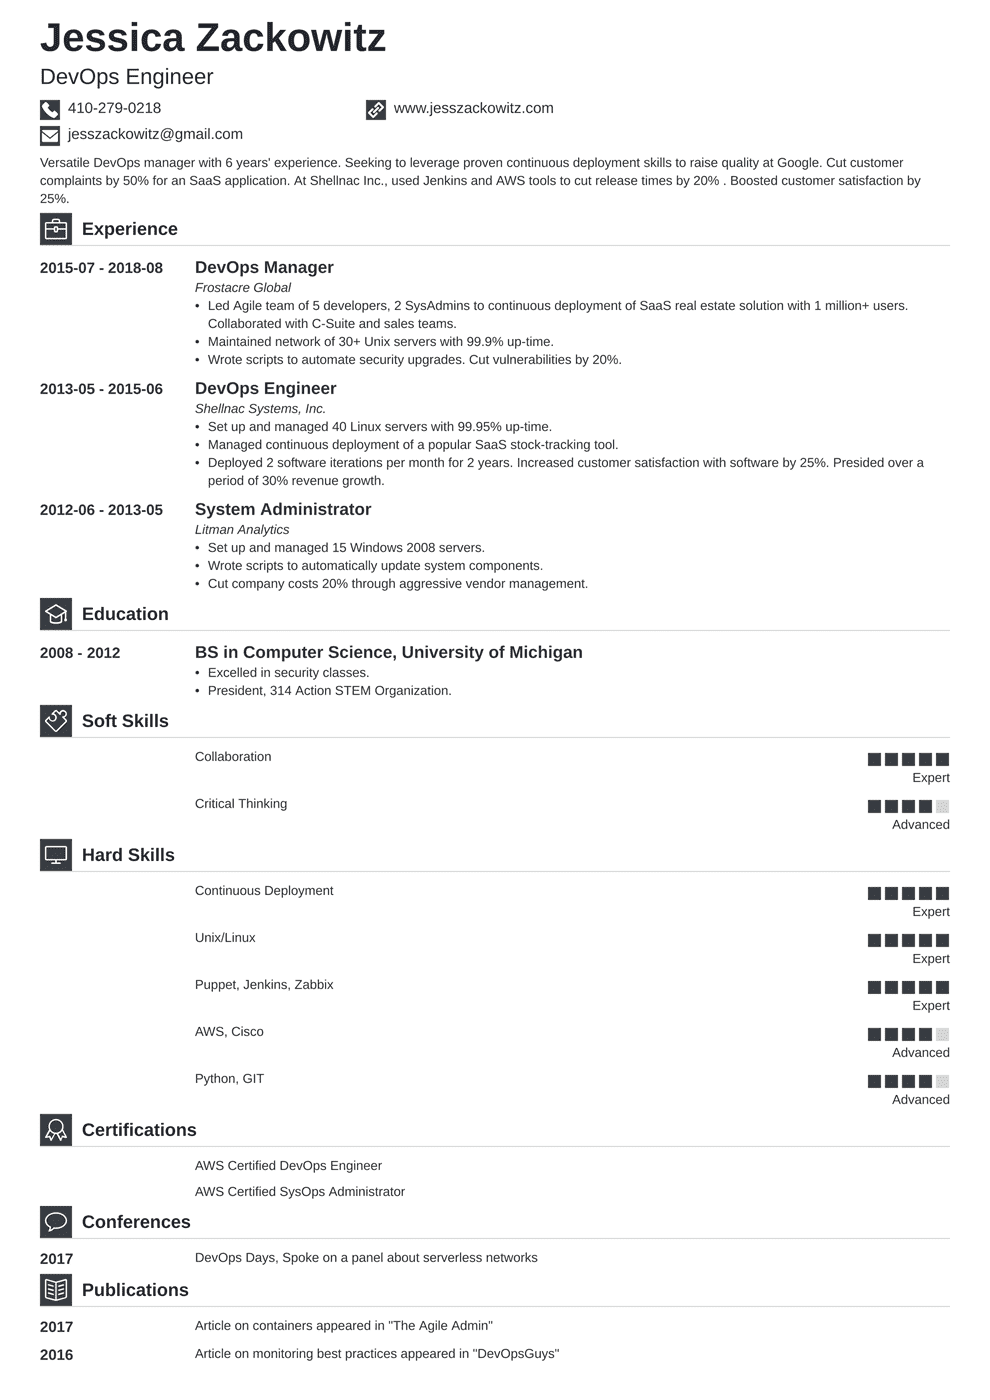 devops resume template iconic in 2020 Resume examples